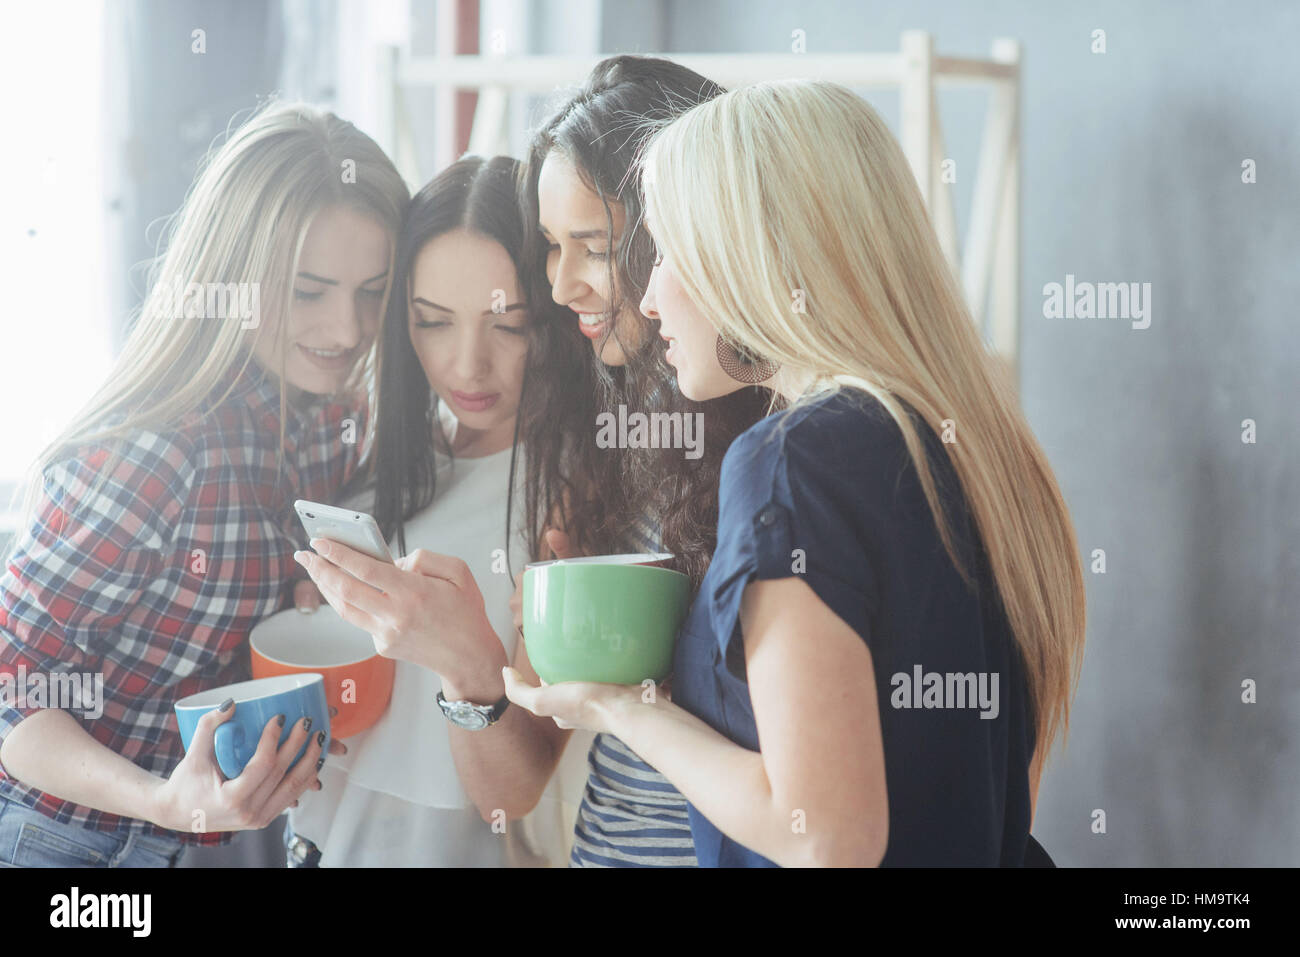 Group beautiful young people enjoying in conversation and drinking coffee, best friends girls together having fun, - Stock Image